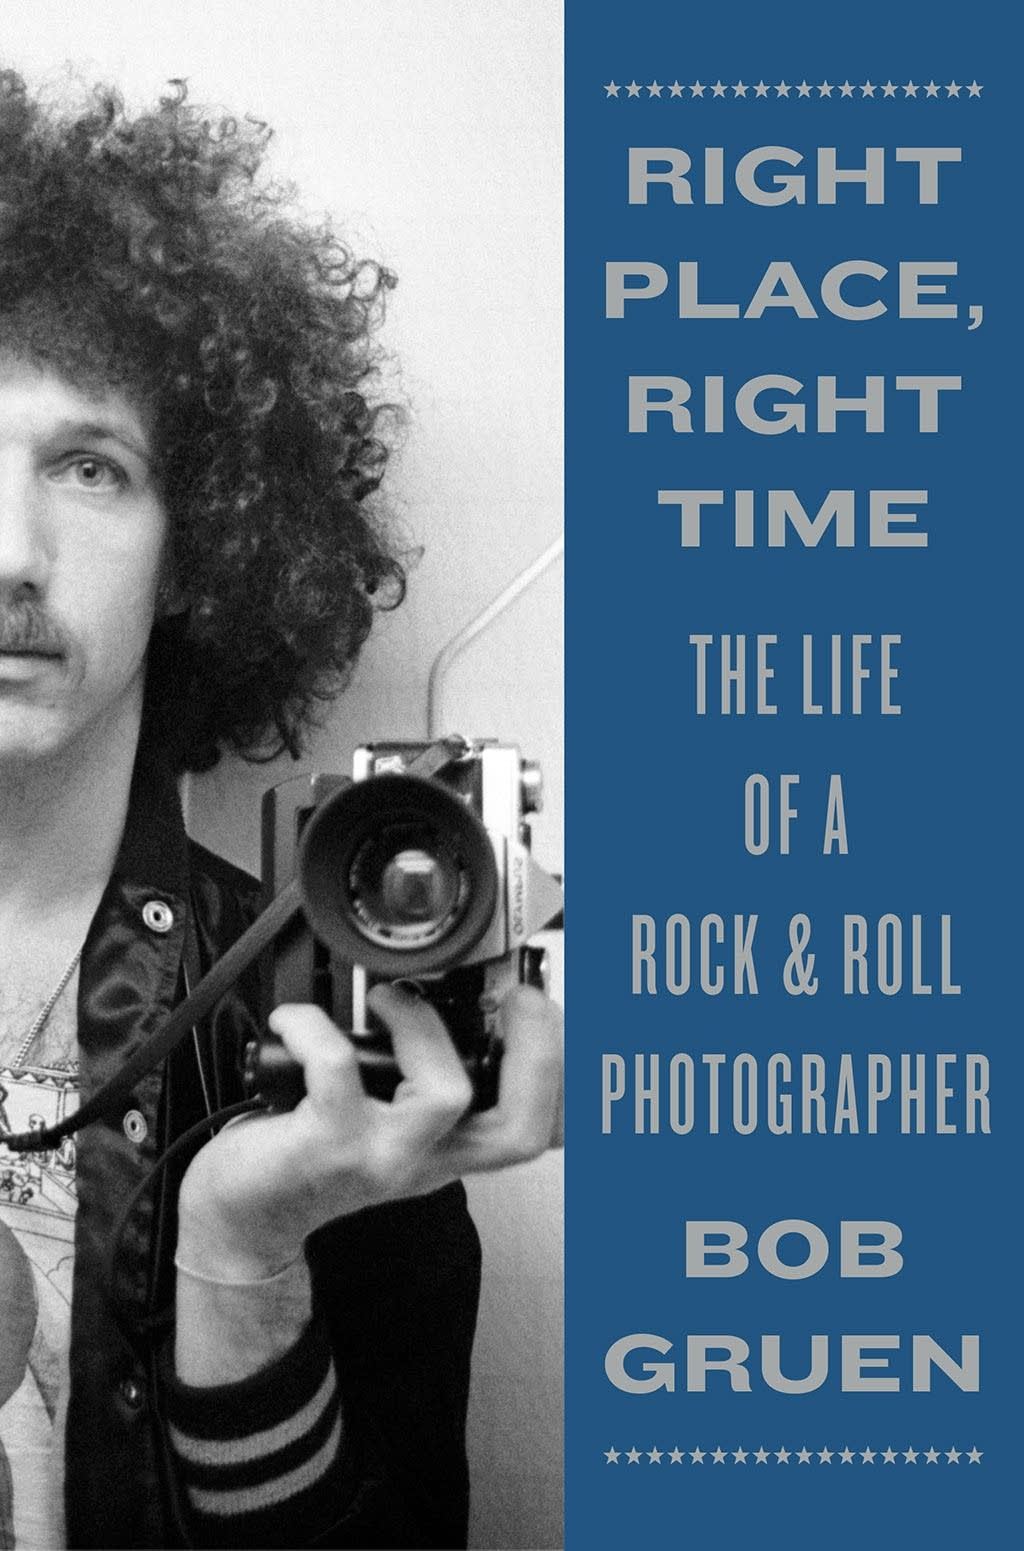 Bob Gruen, 'Right Place, Right Time'